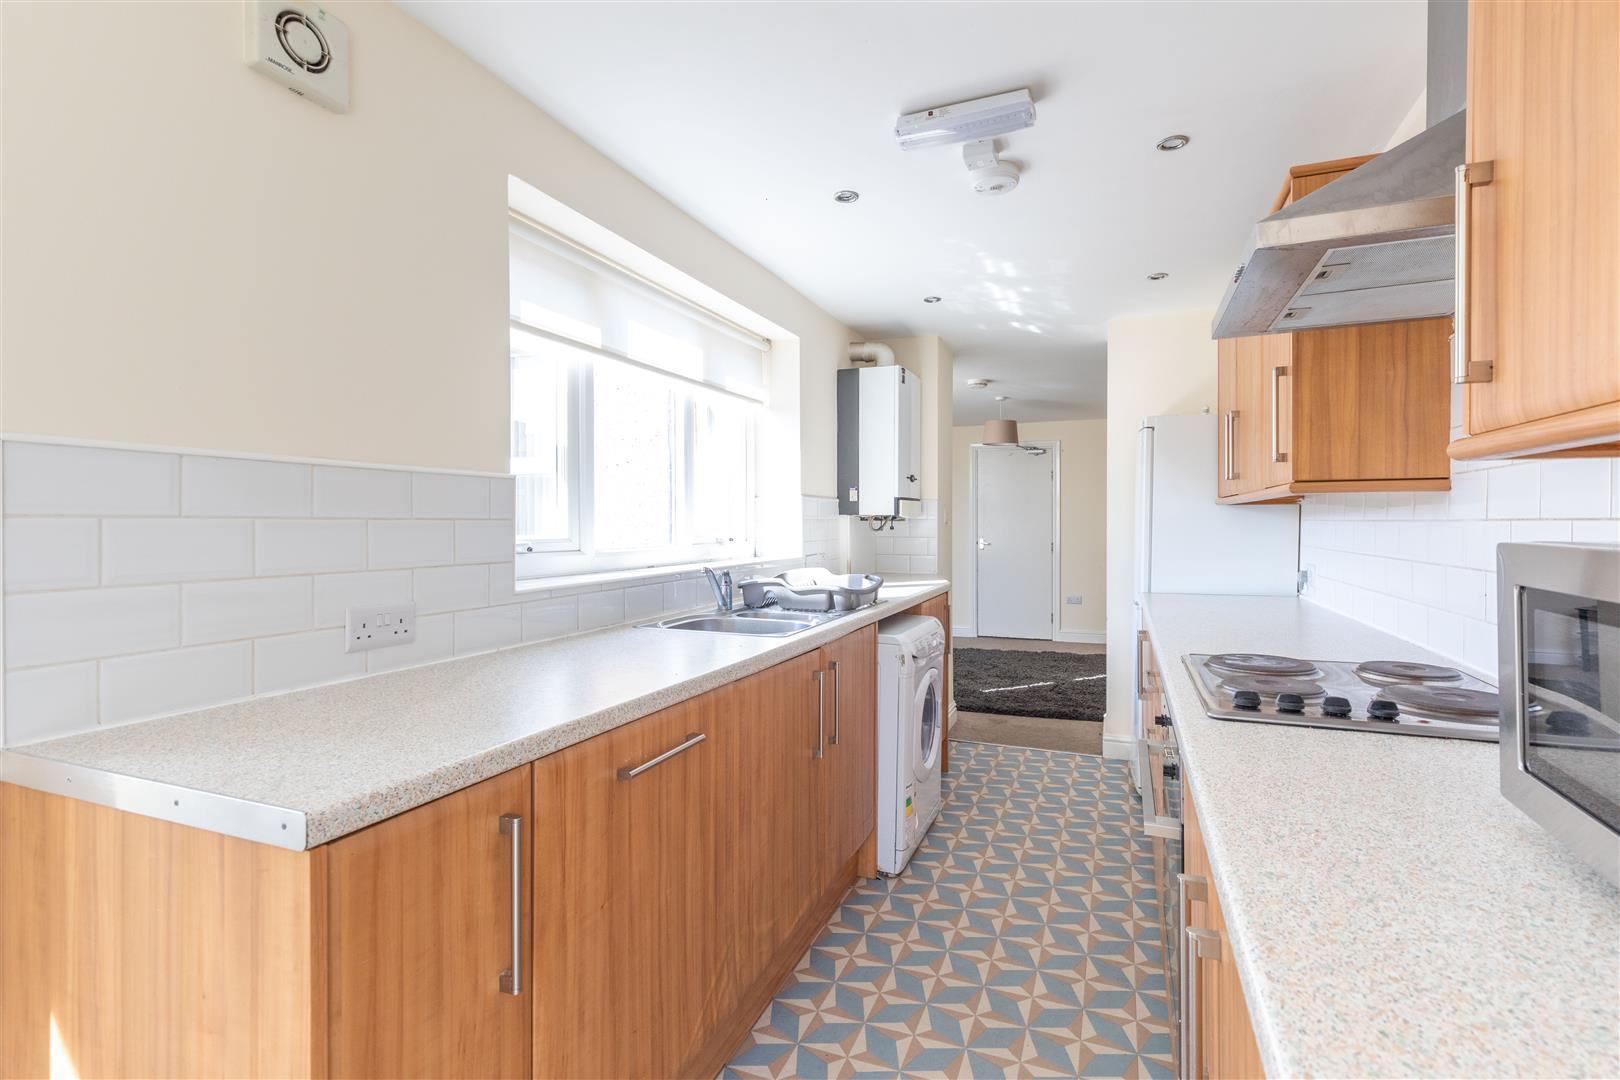 4 bed to rent in Newcastle Upon Tyne, NE6 5AR  - Property Image 13